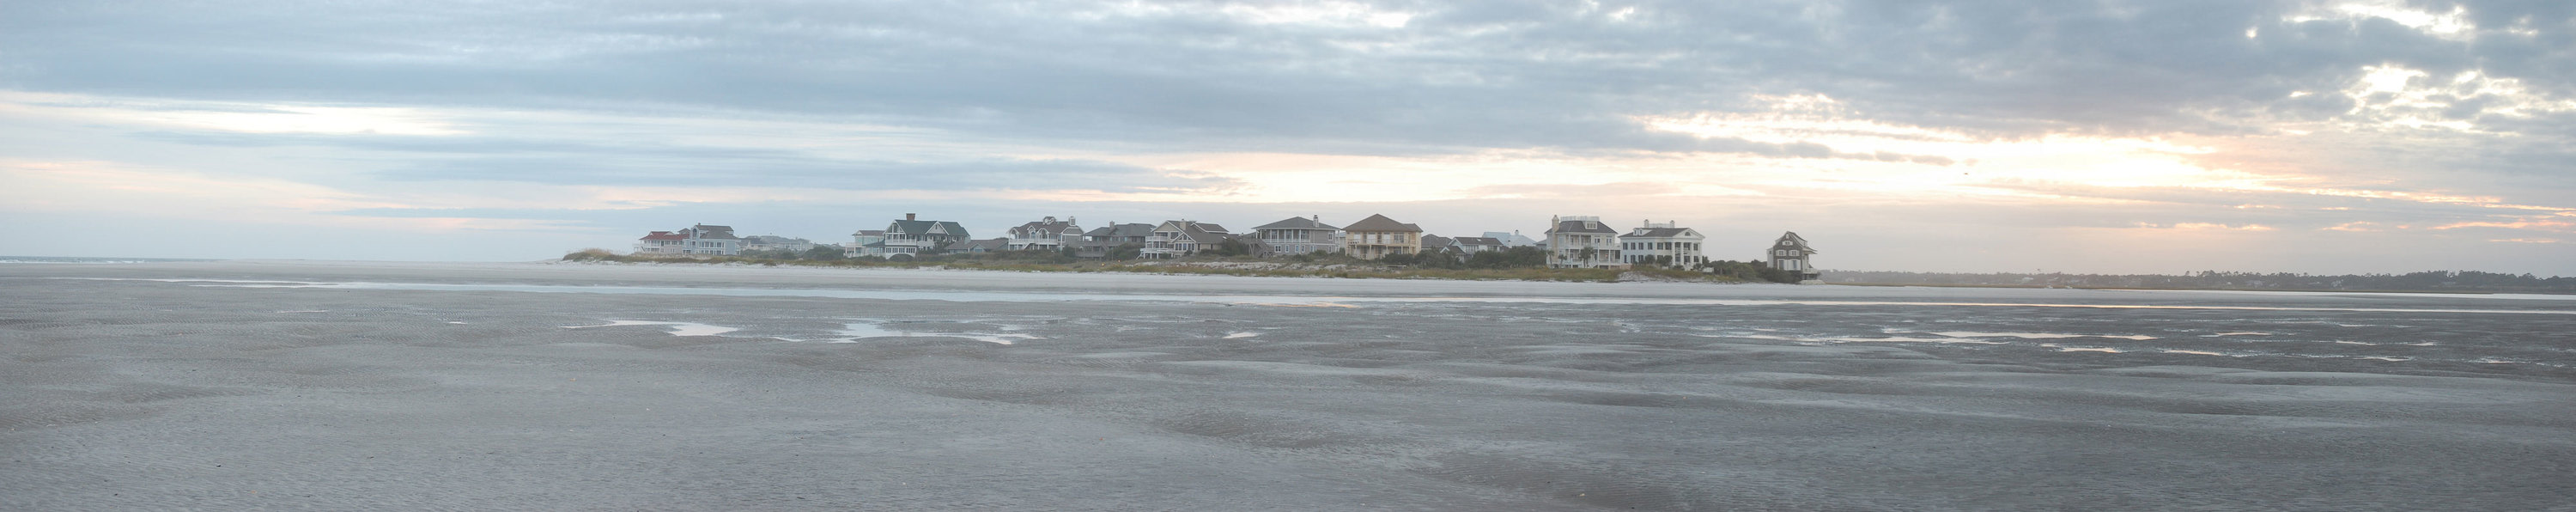 <div class='title'>           Figure 8 Island North Carolina         </div>